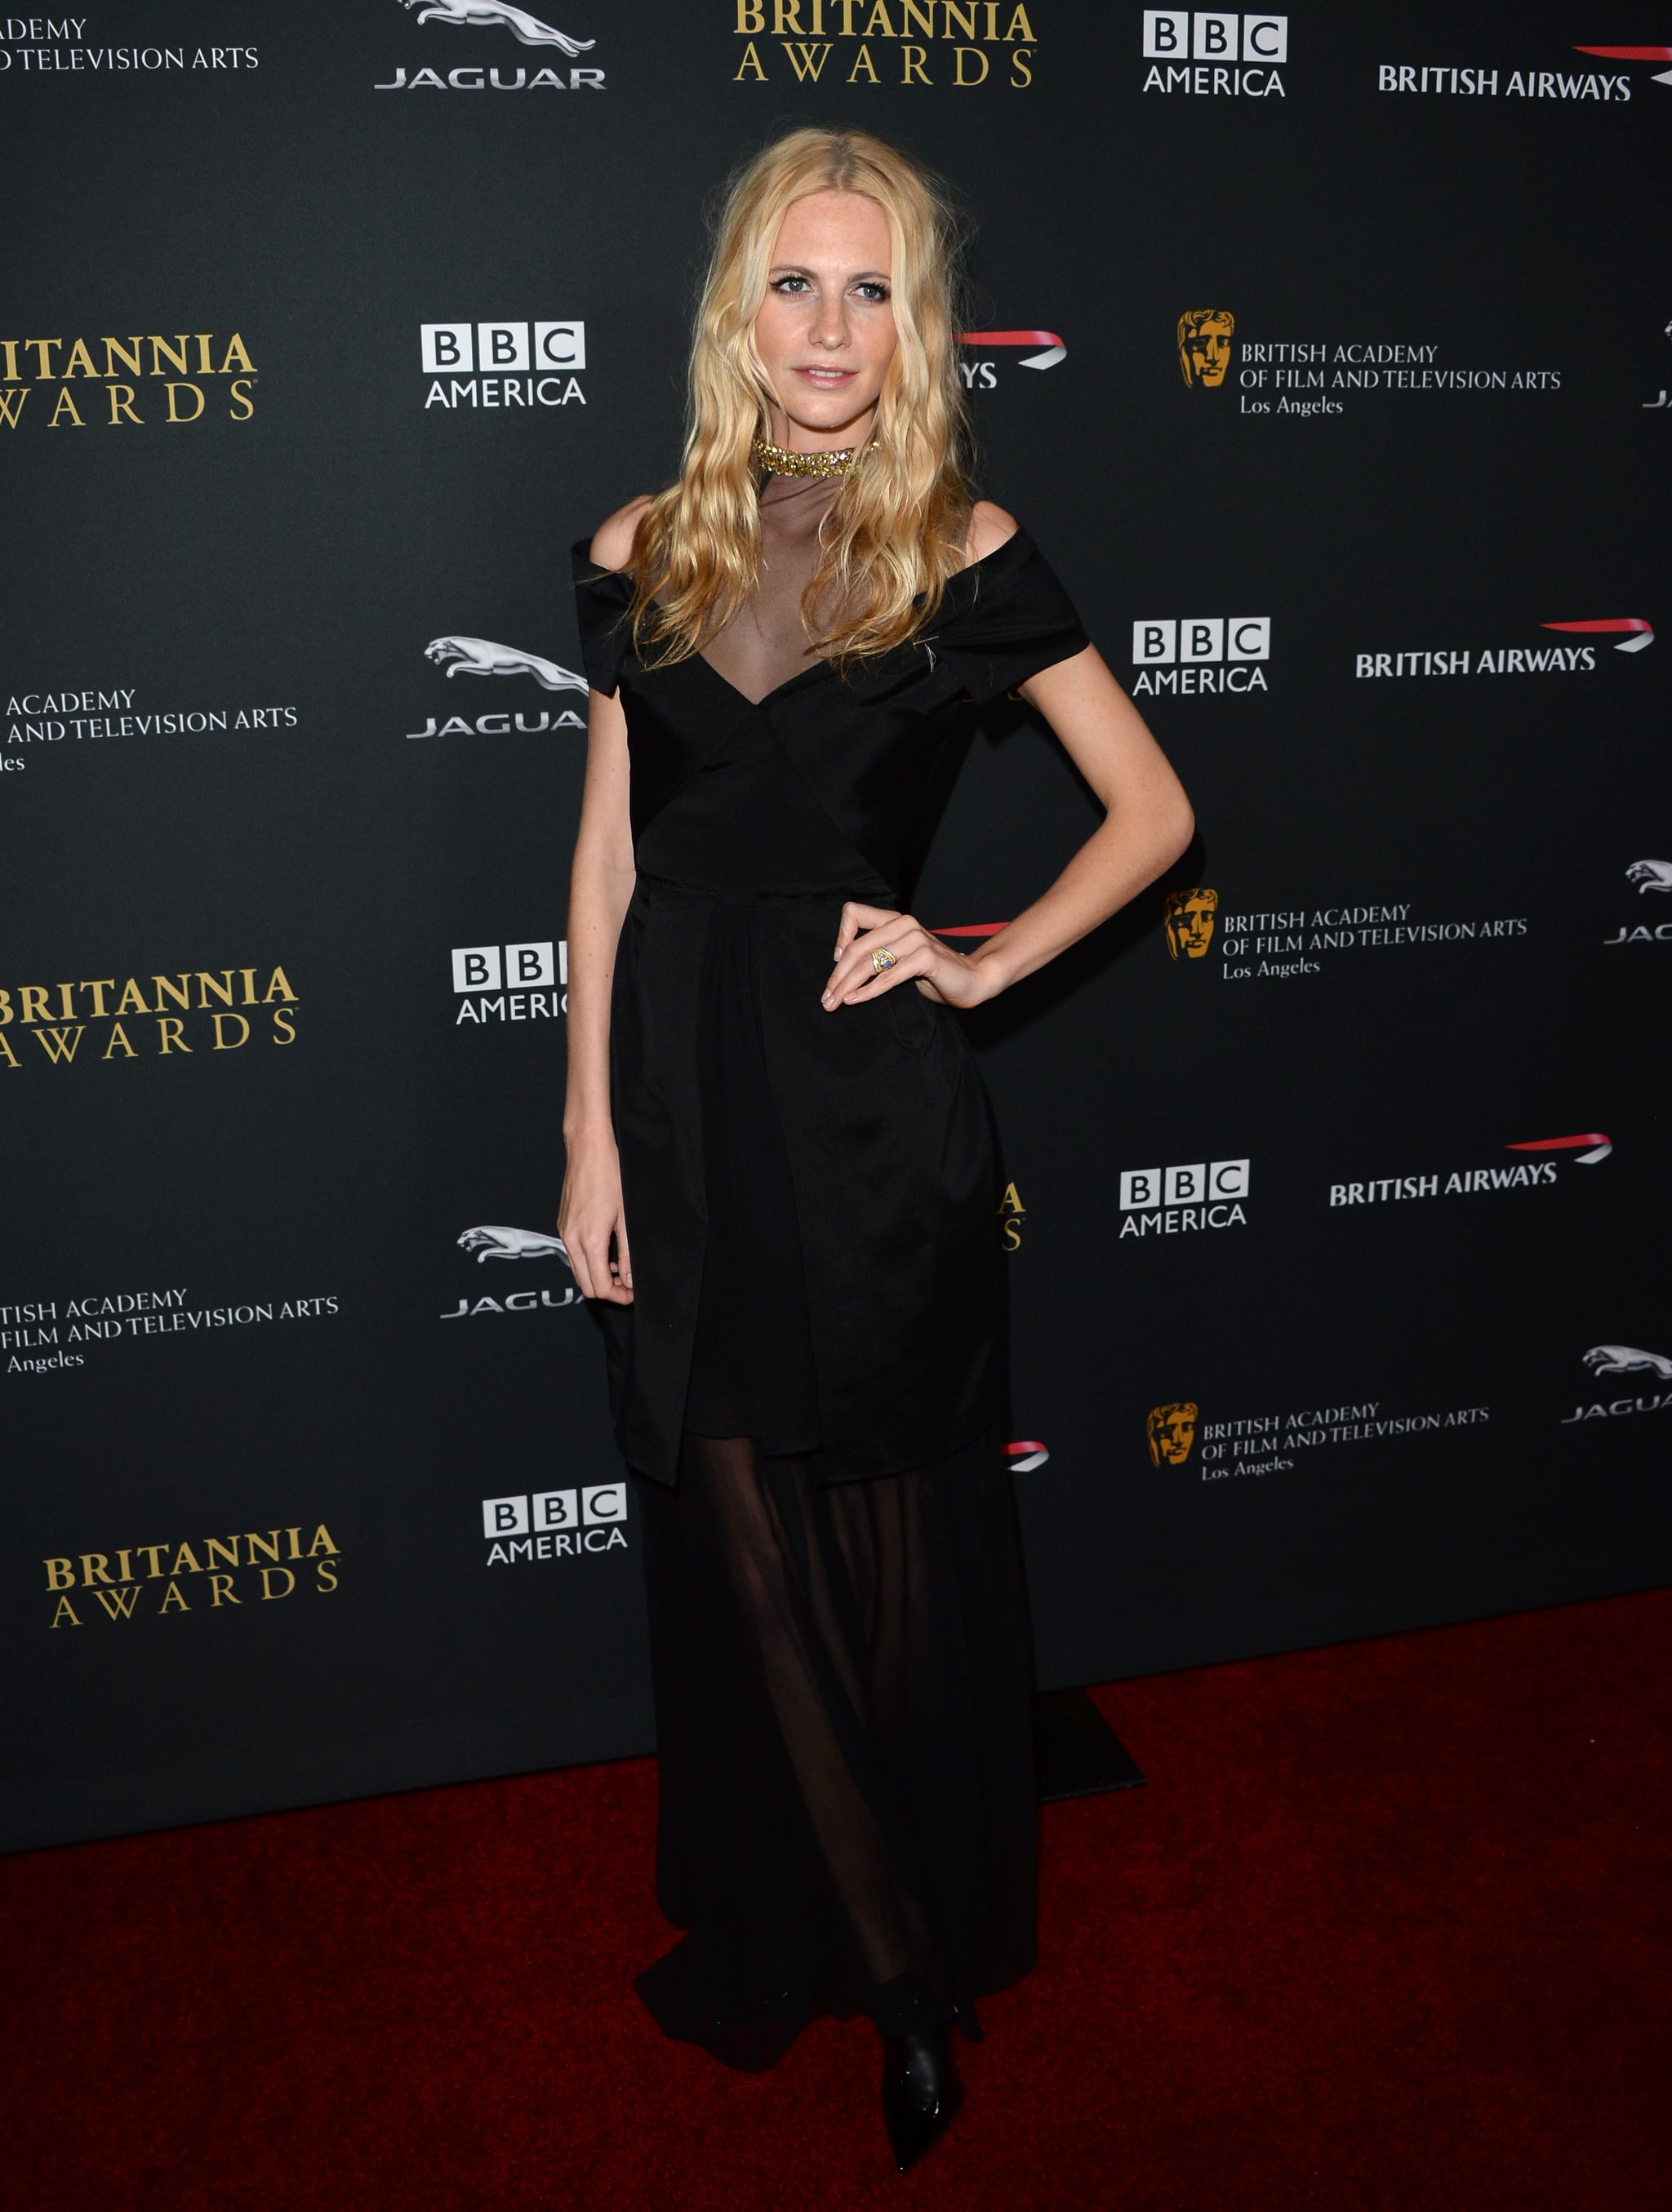 Model Poppy Delevingne attended the BAFTA LA Jaguar Britannia Awards.